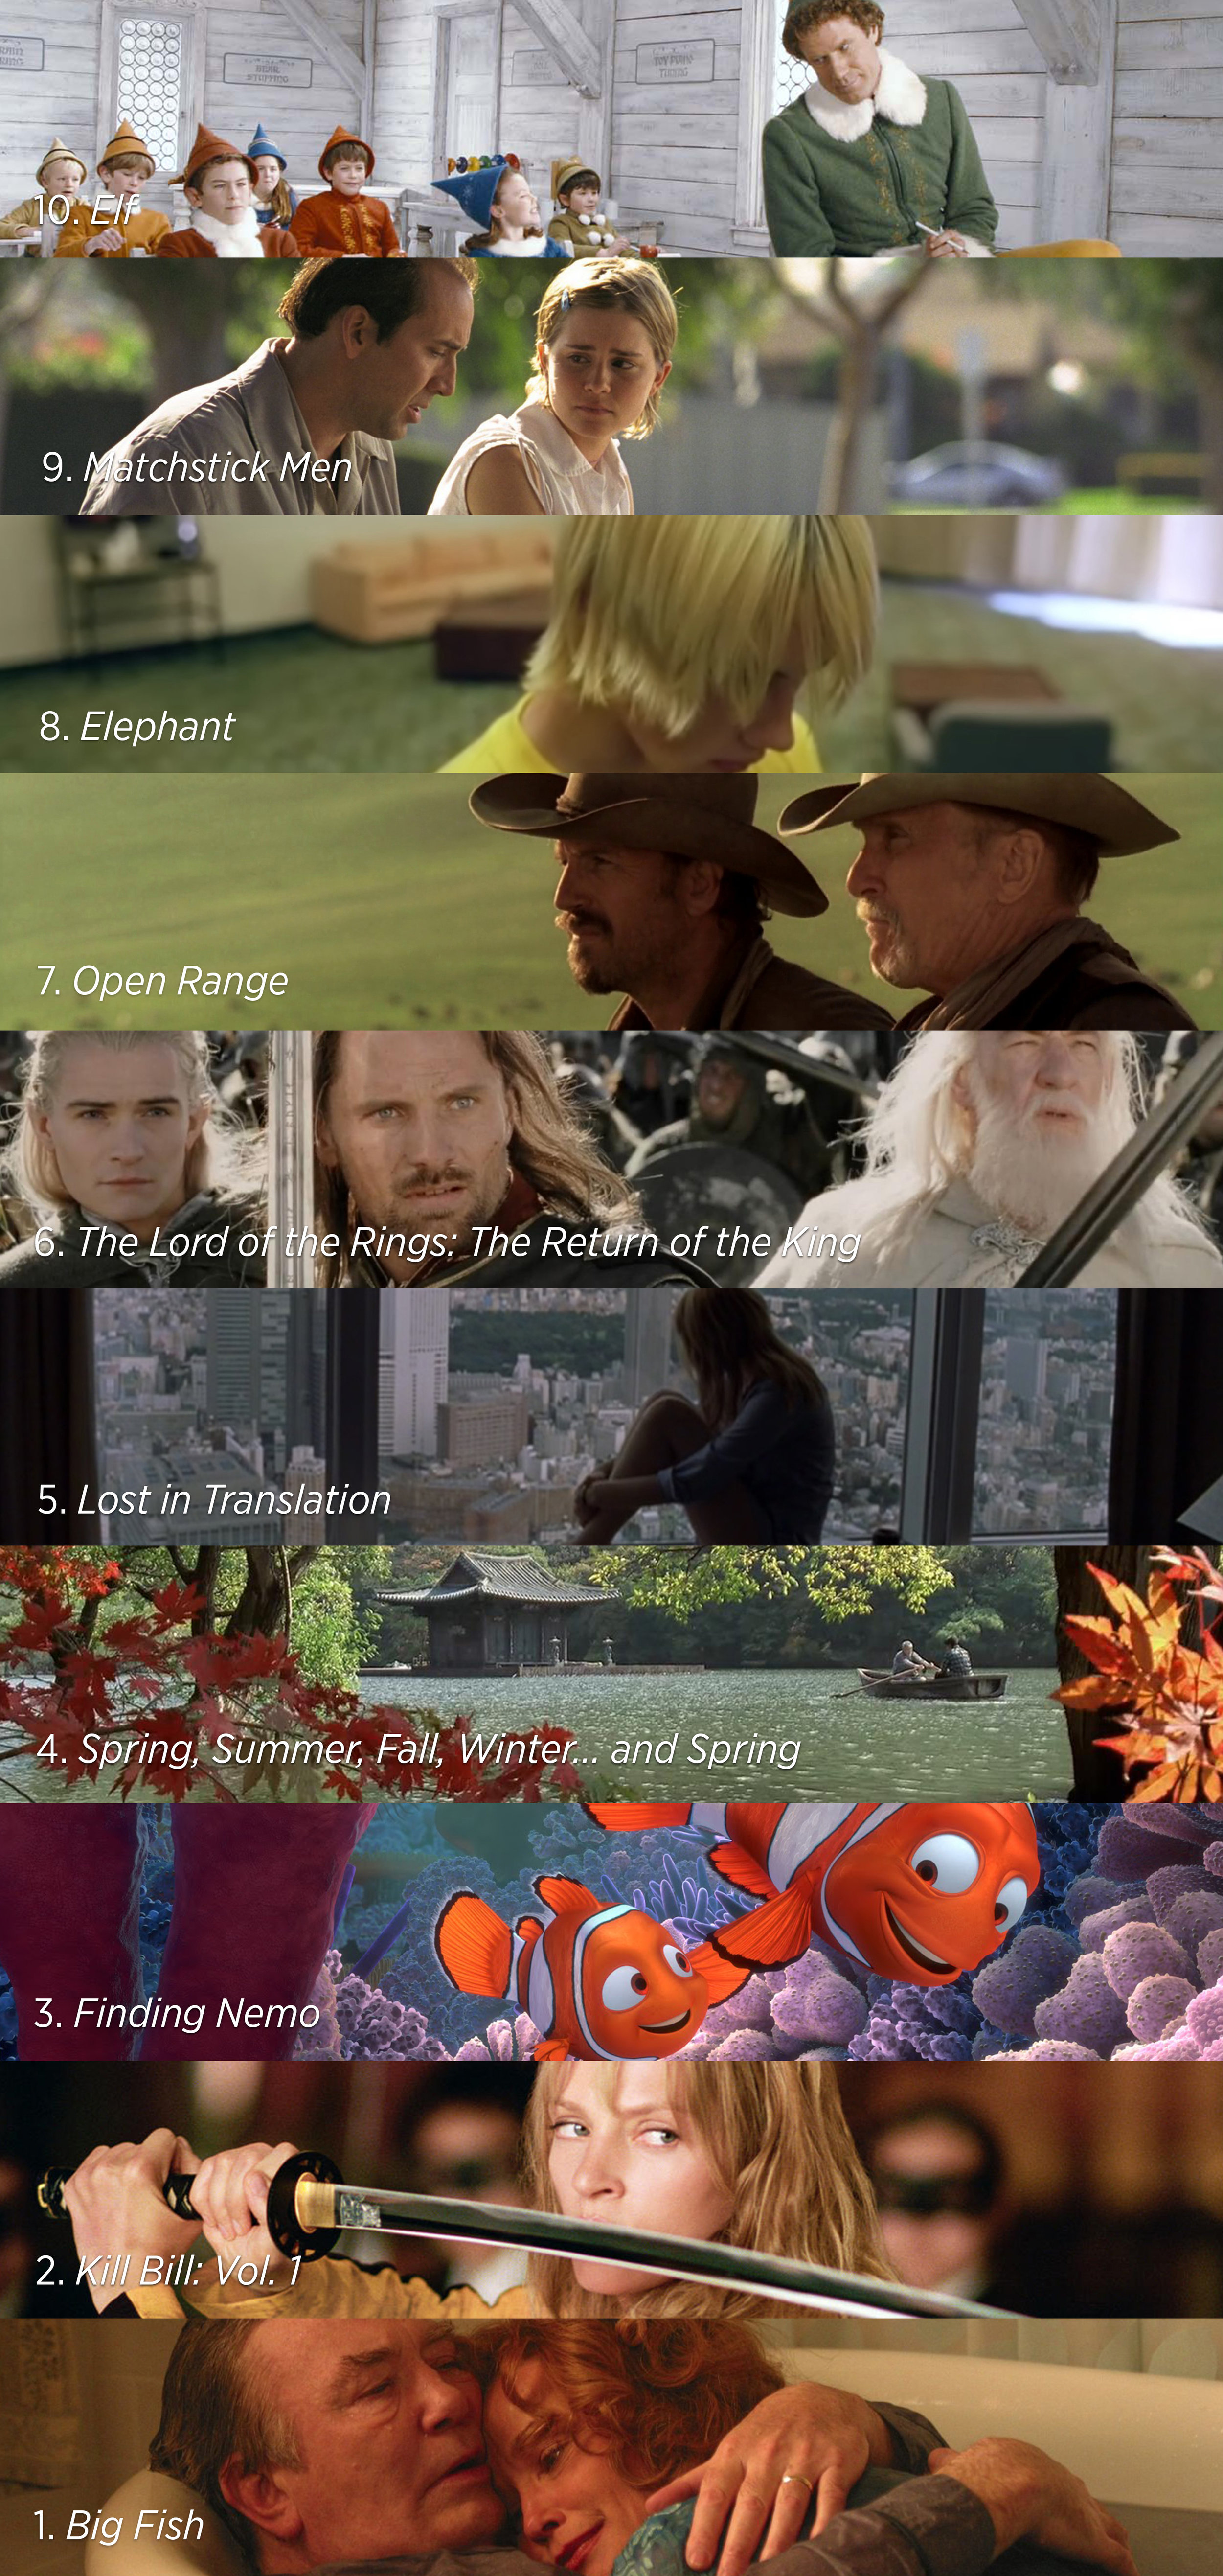 Big Fish ,  Kill Bill: Vol. 1  ,  Finding Nemo ,  Spring, Summer, Fall, Winter... and Spring ,  Lost in Translation ,  The Lord of the Rings: The Return of the King ,  Open Range ,  Elephant ,  Matchstick Men ,  Elf